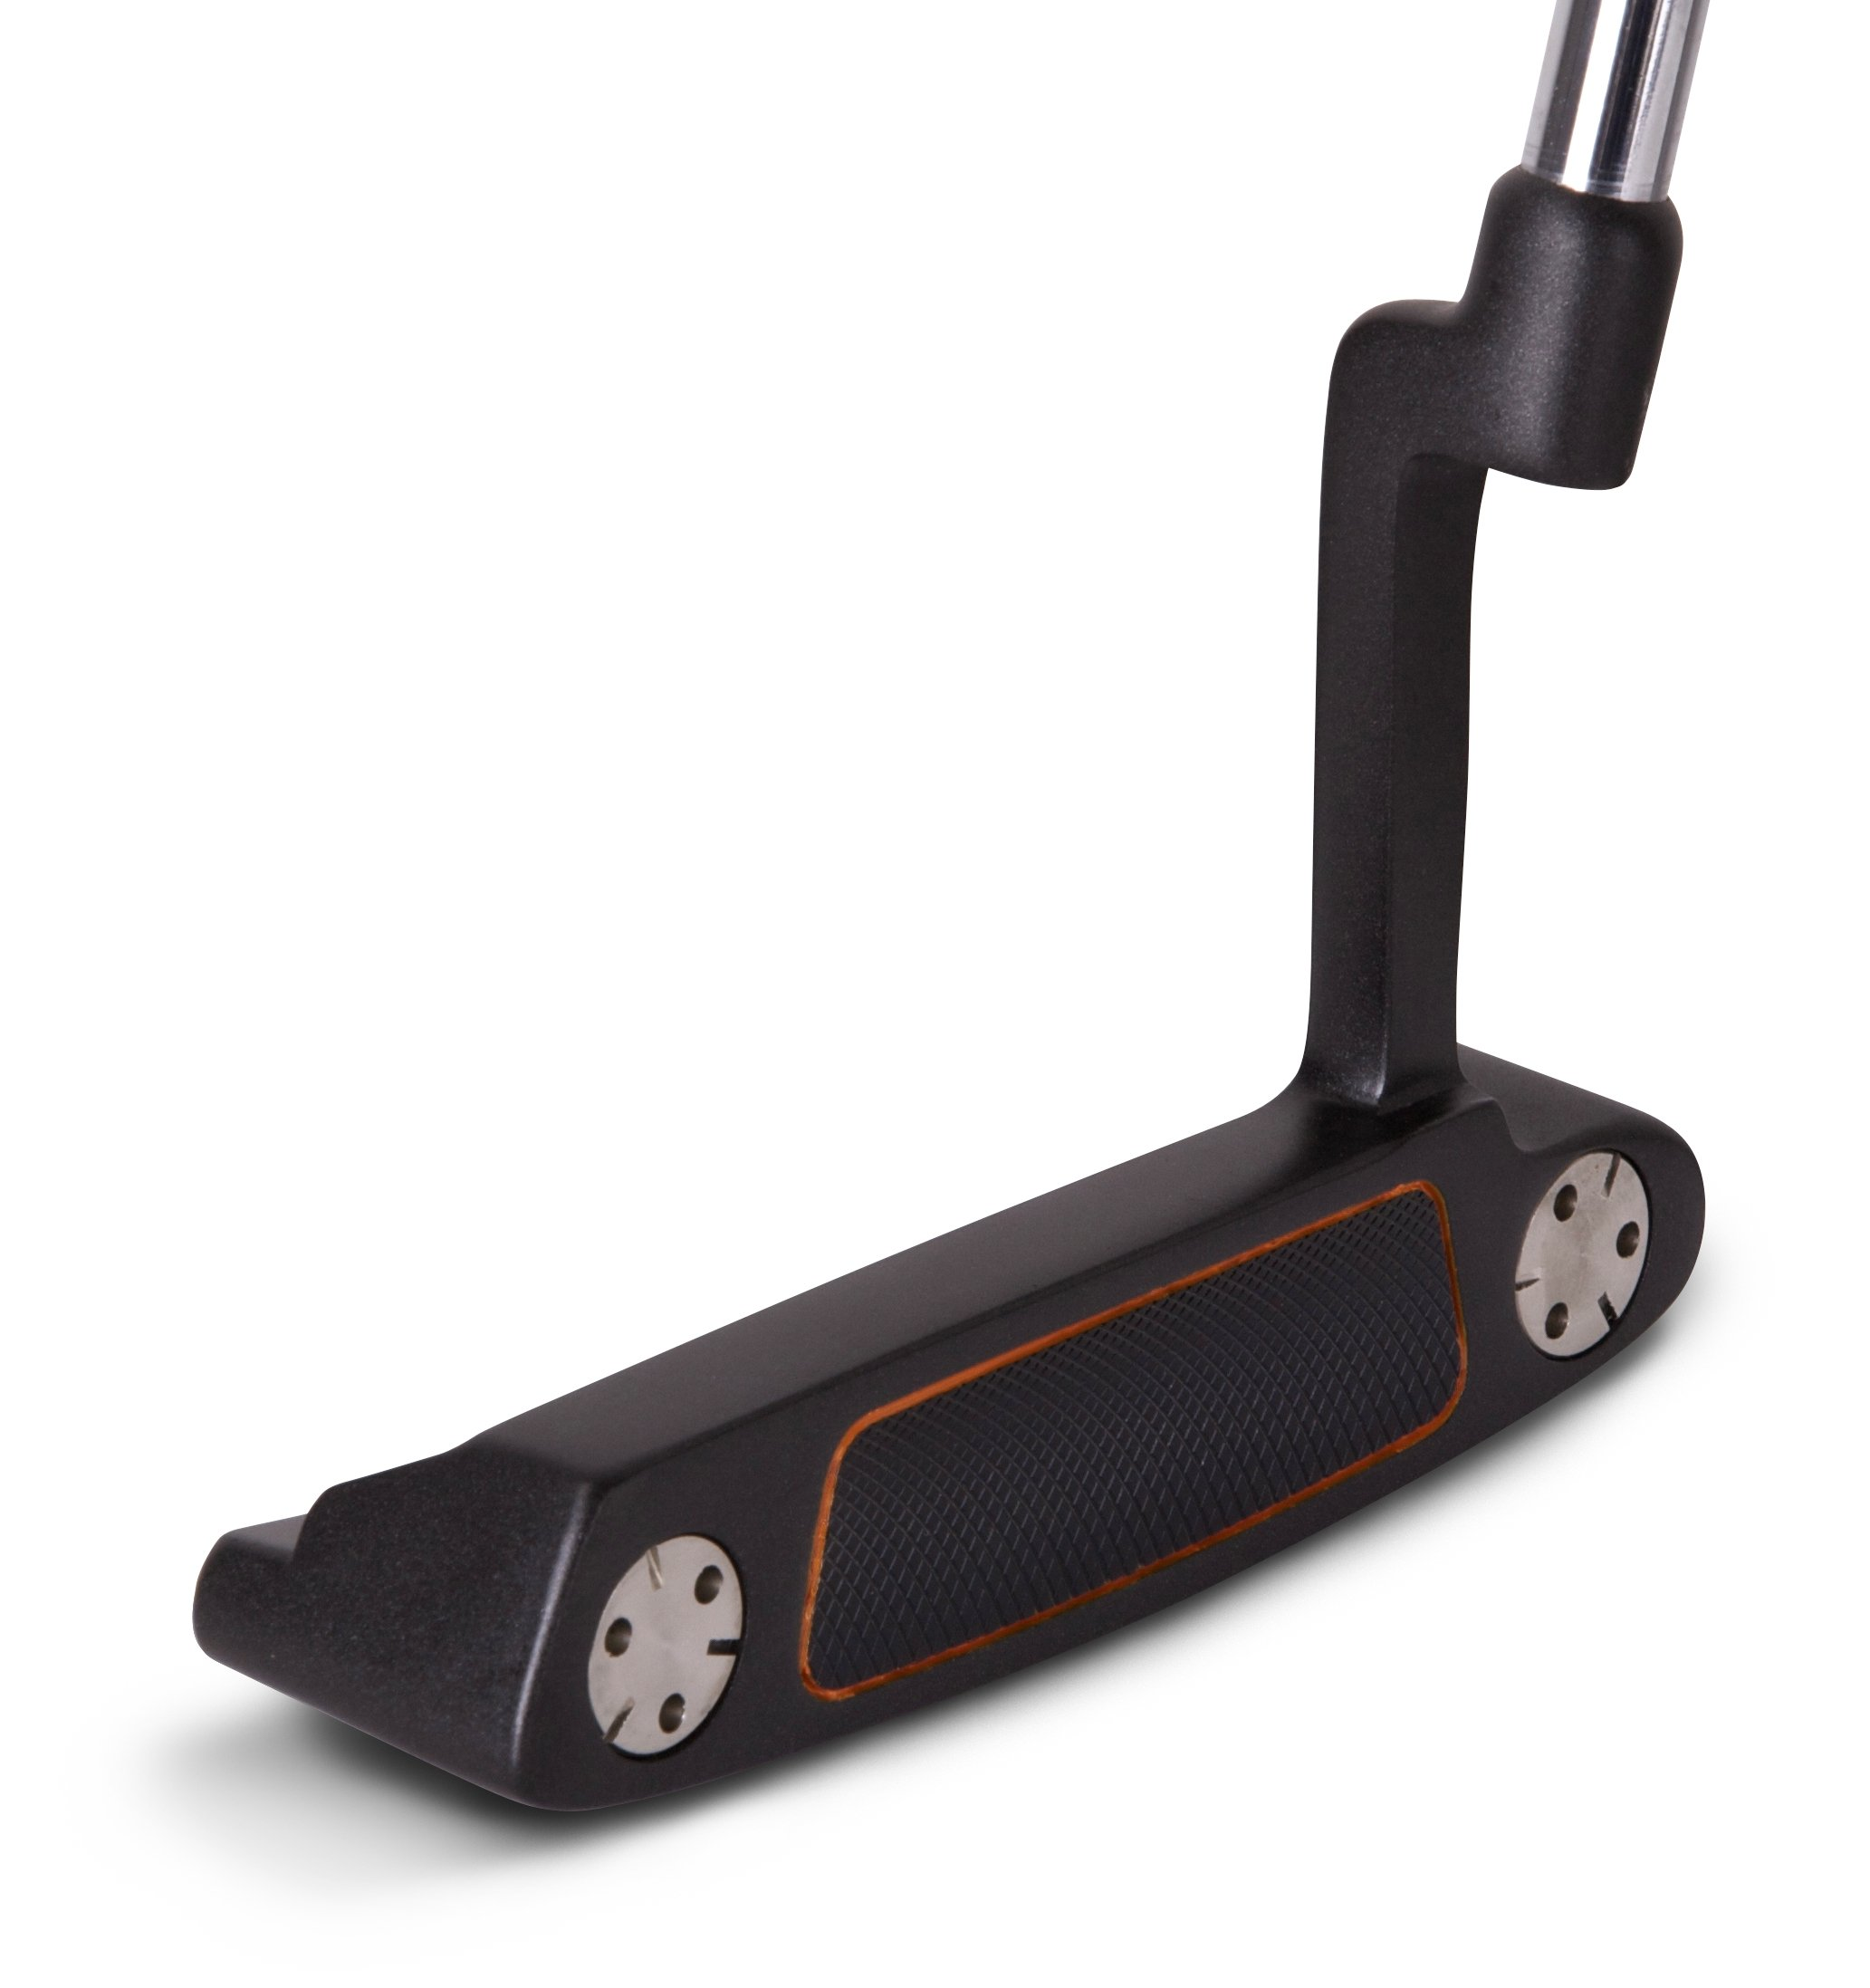 Pinemeadow Pre 2.0 Putter (Right-Handed, Steel, Regular, 34-Inches) by Pinemeadow Golf